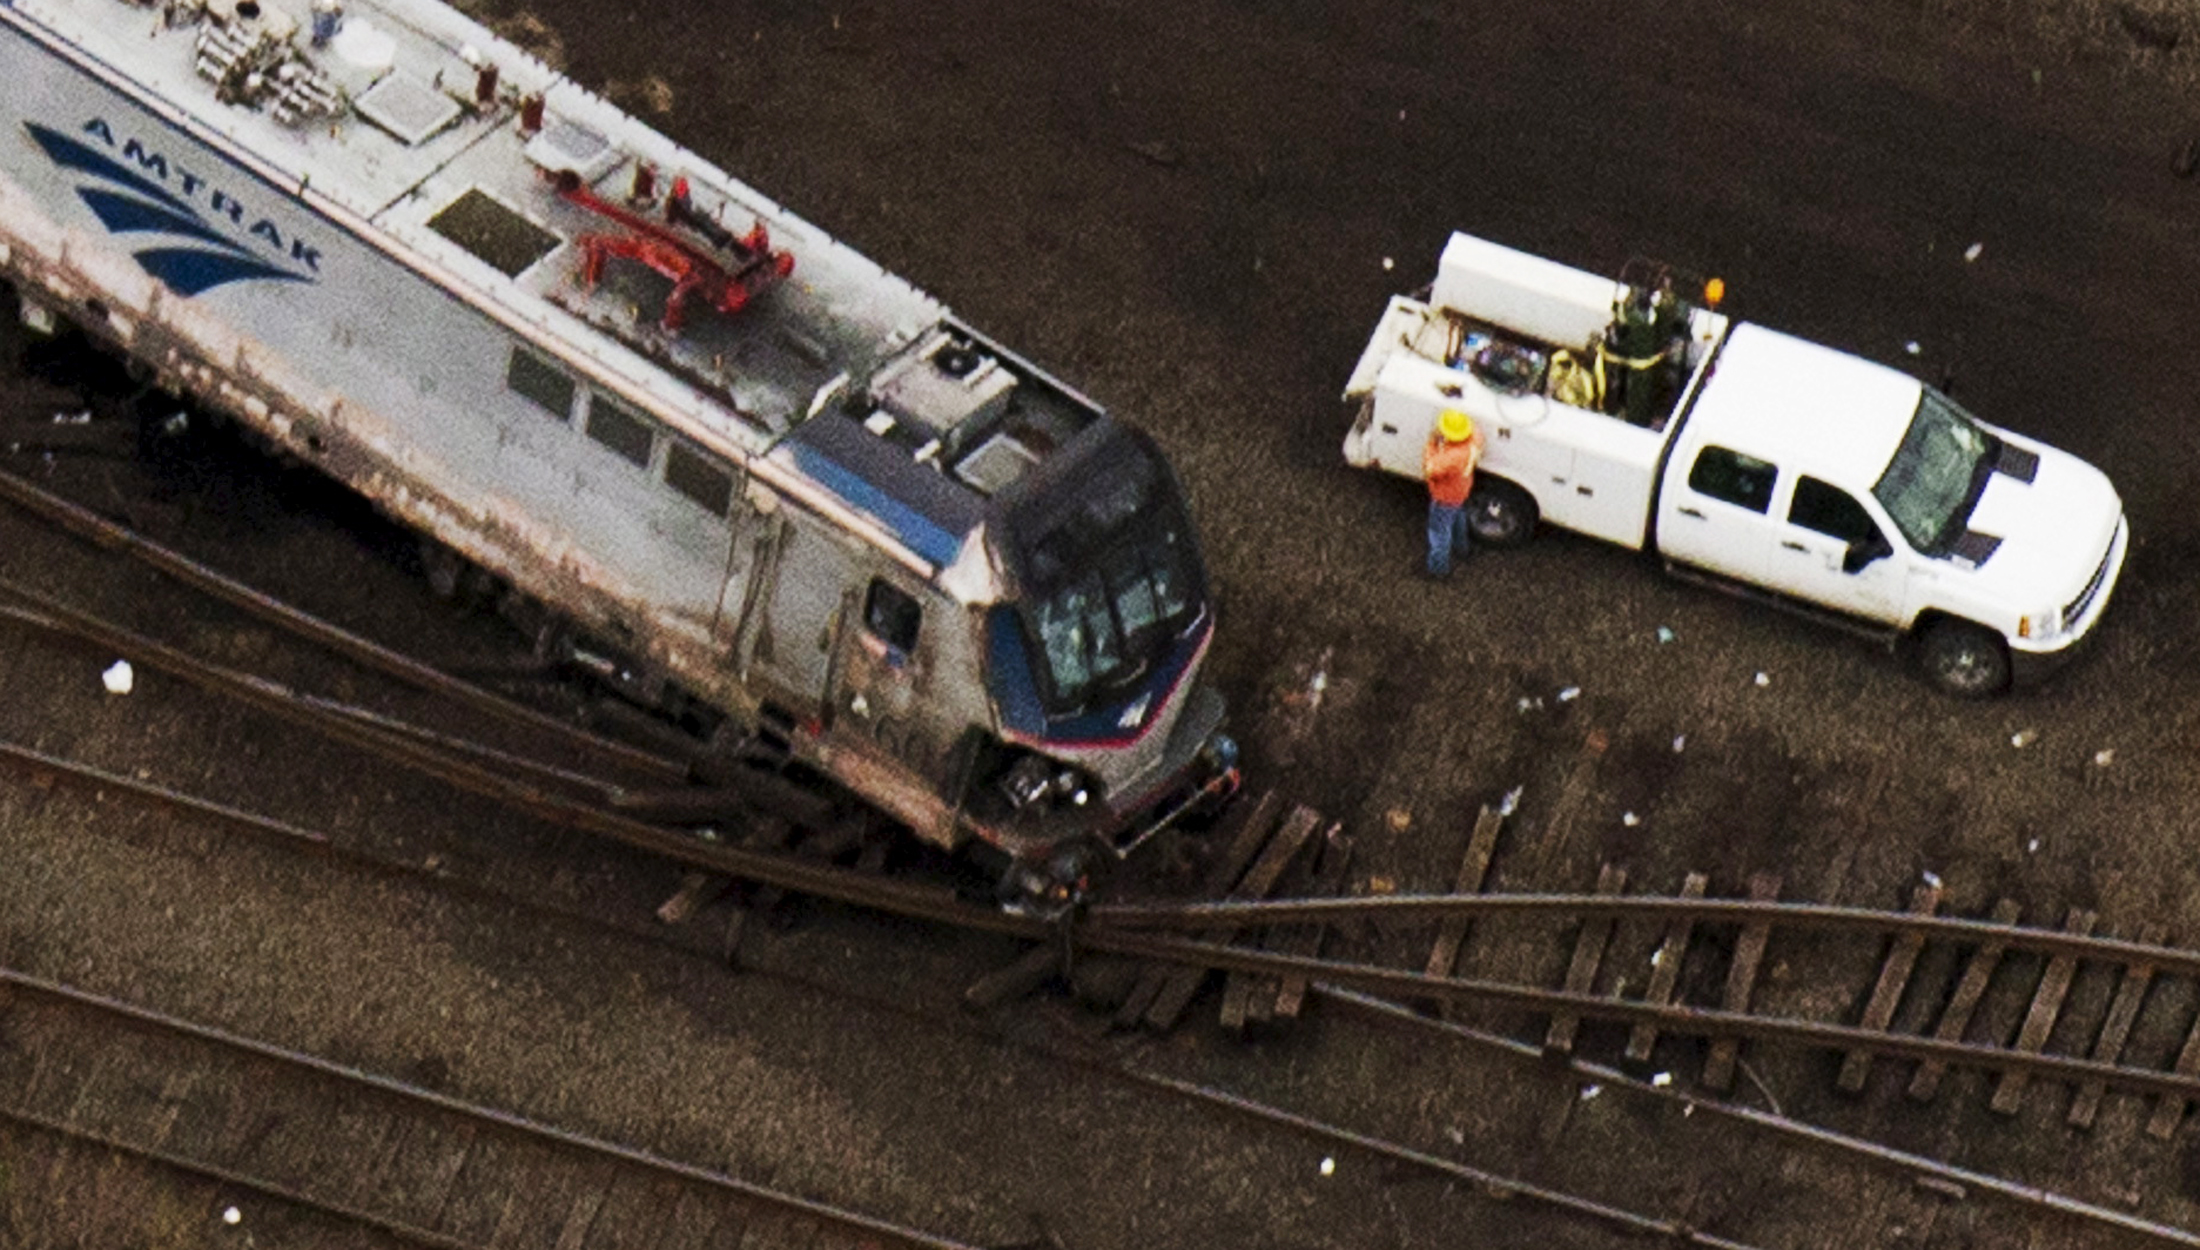 Emergency workers look through the remains of a derailed Amtrak train in Philadelphia, Pennsylvania in this May 13, 2015 file photo